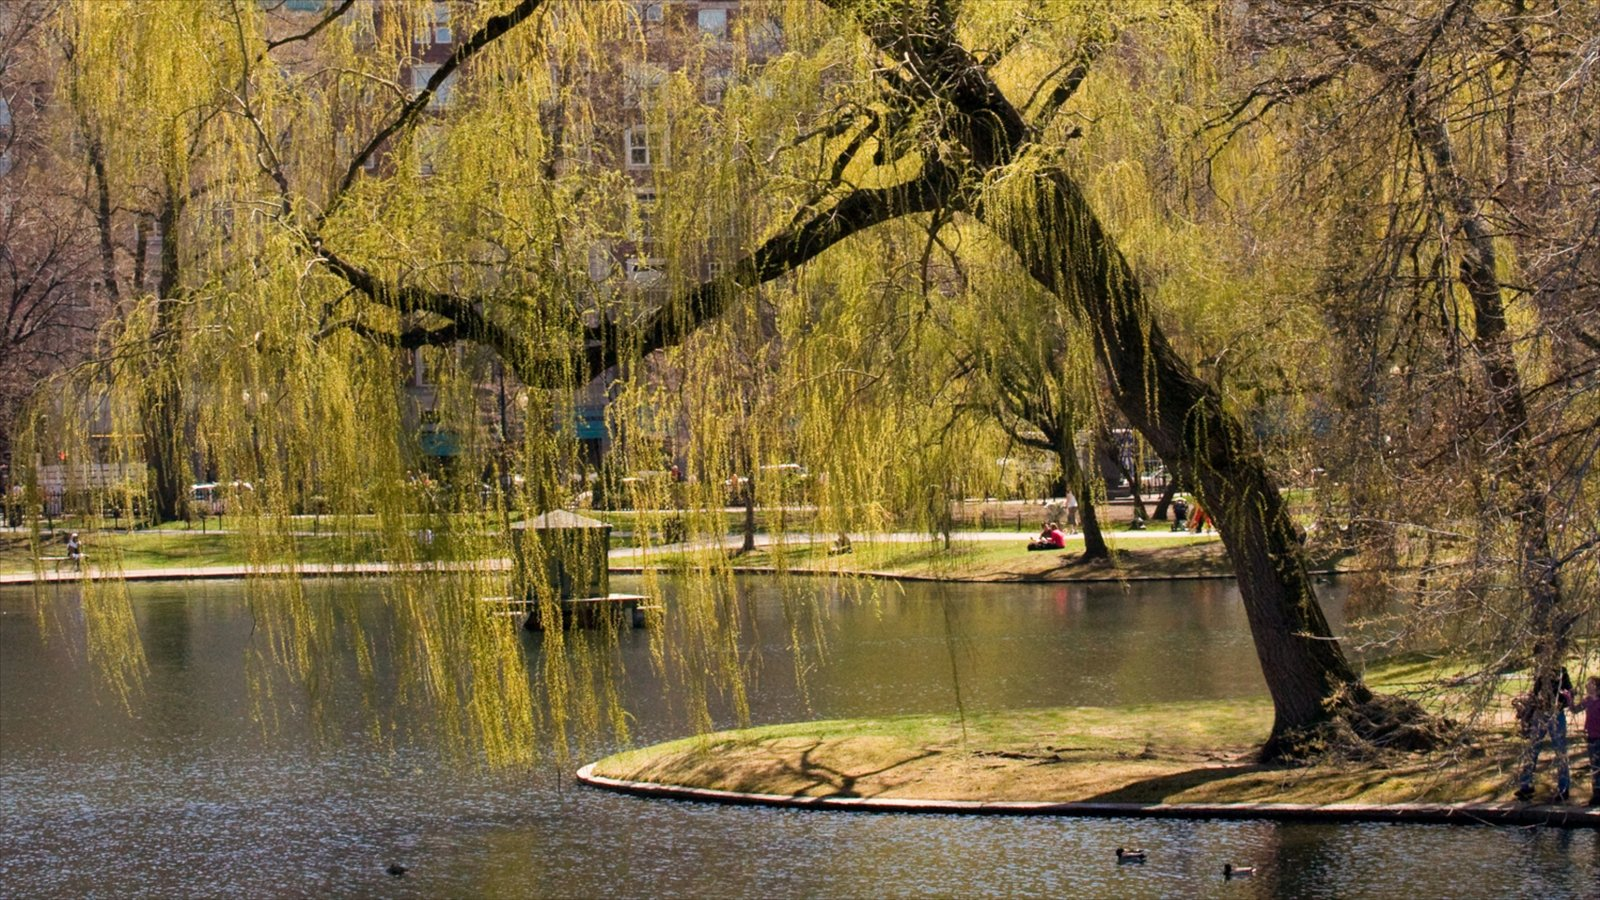 Boston Public Garden Pictures: View Photos & Images of Boston Public ...